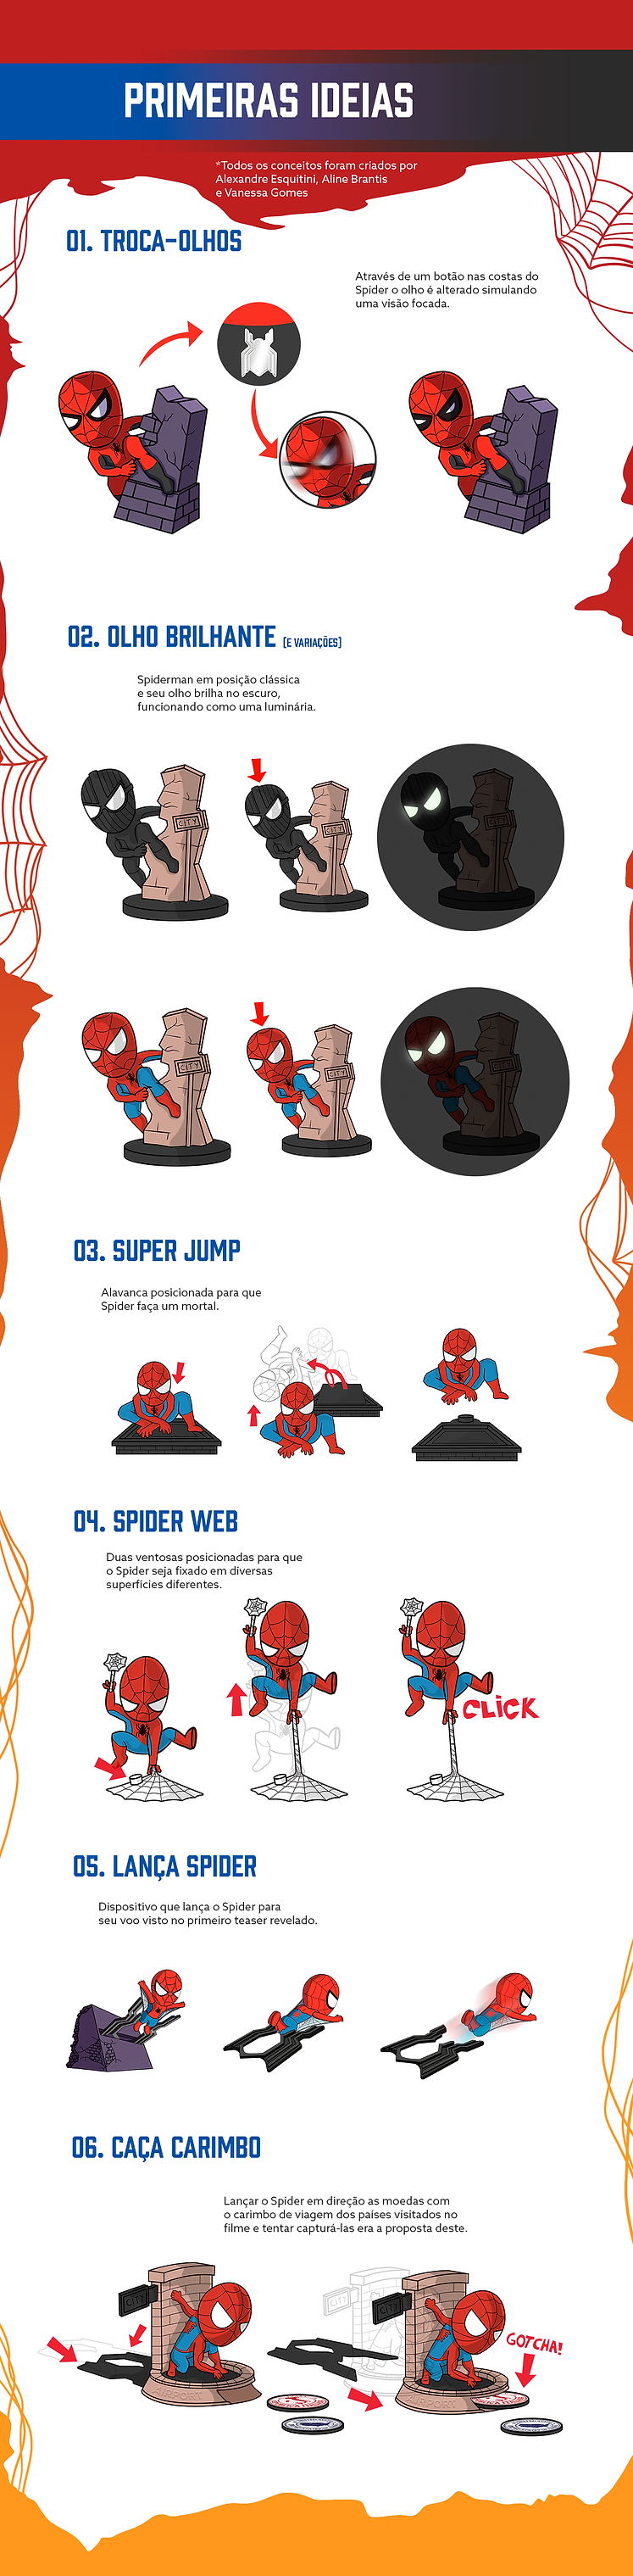 Behance---Spider---01.png